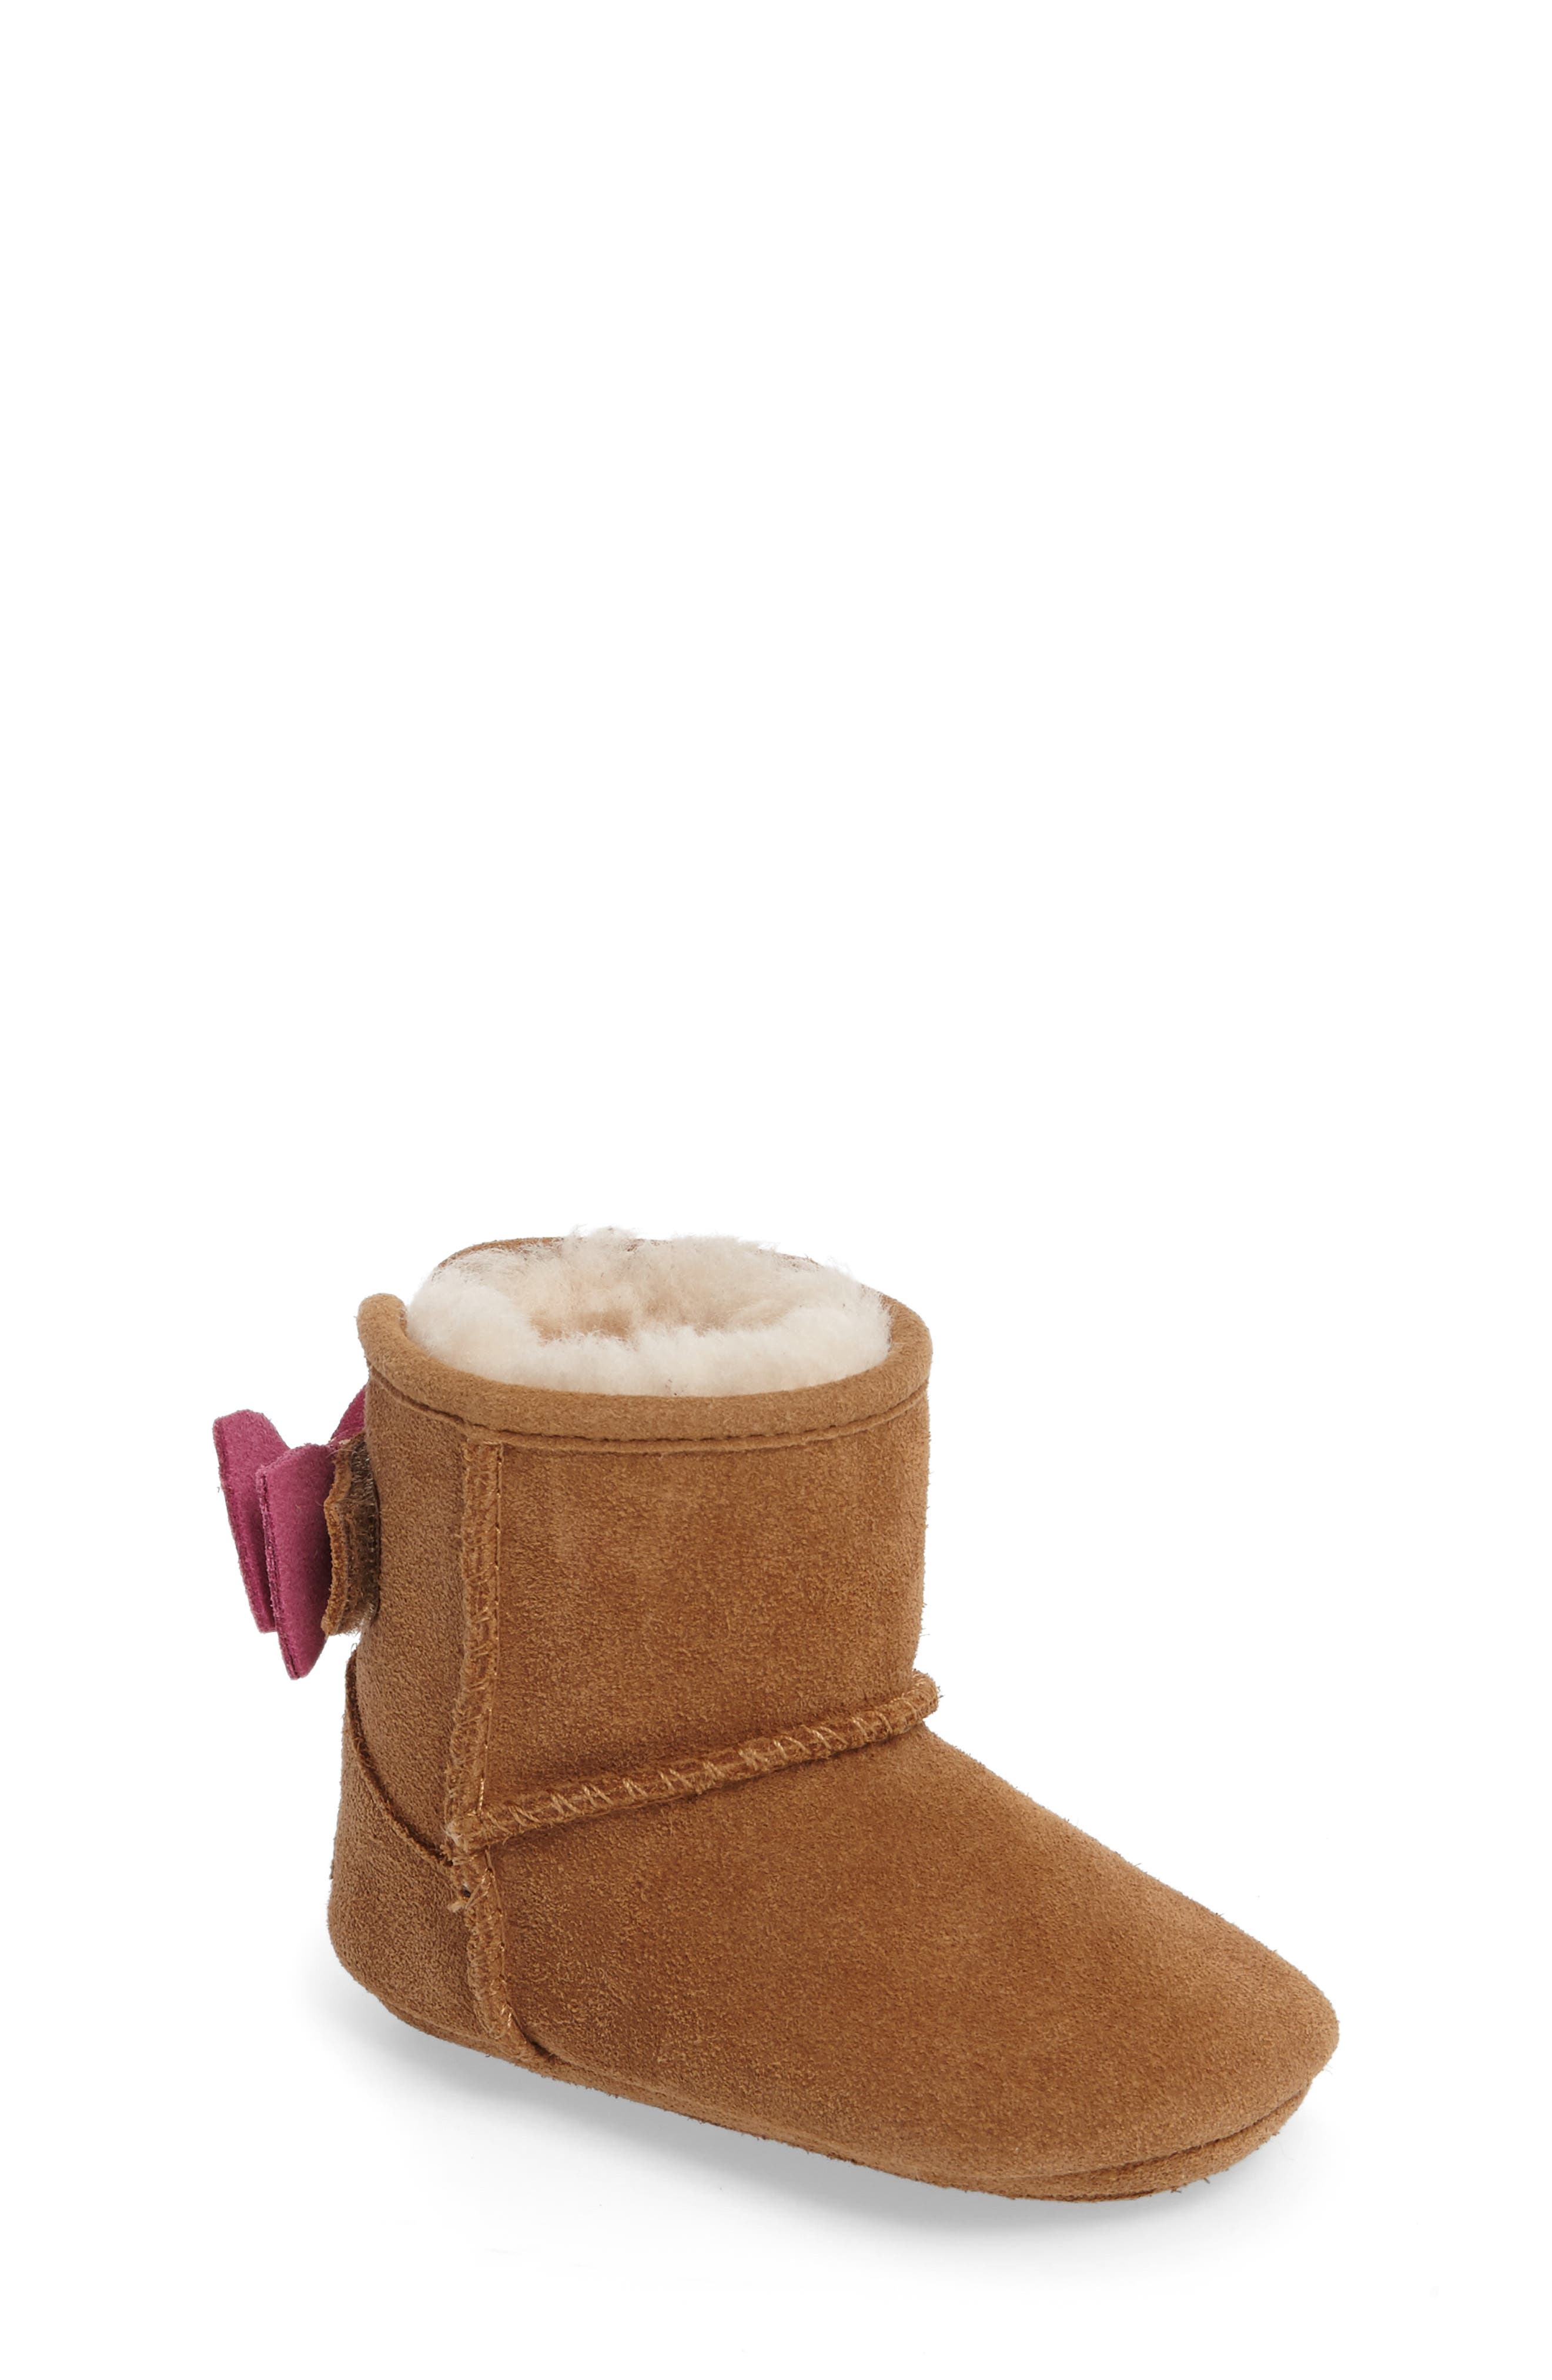 Jesse Bow II Dots Boot,                             Main thumbnail 1, color,                             Chestnut